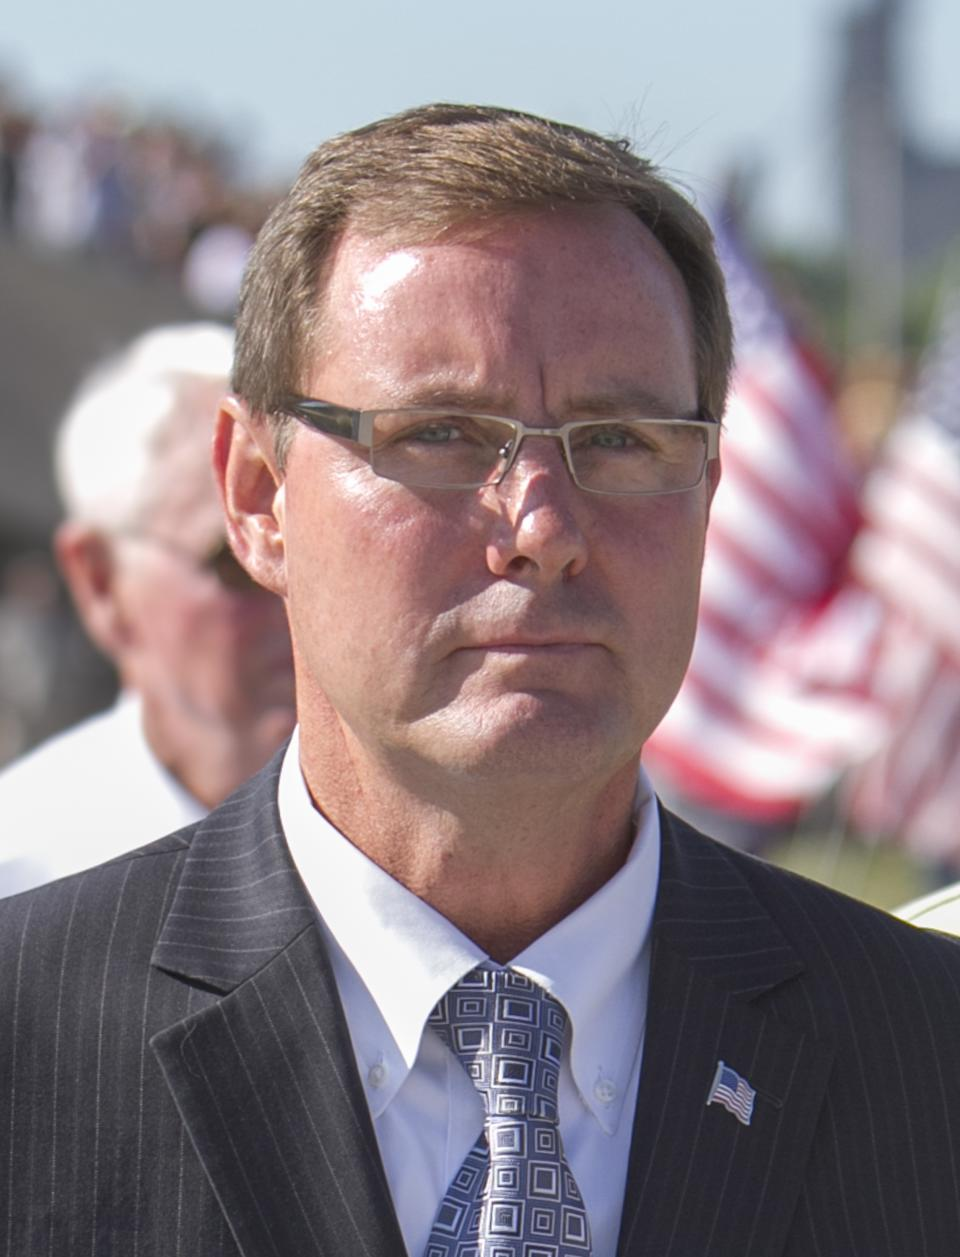 This file photo from July 25, 2011 shows Neb. Lt. Governor Rick Sheehy in Fremont, Neb. On Saturday, Feb. 2, 2013, Lt. Gov. Sheehy resigned. (AP Photo/Nati Harnik)